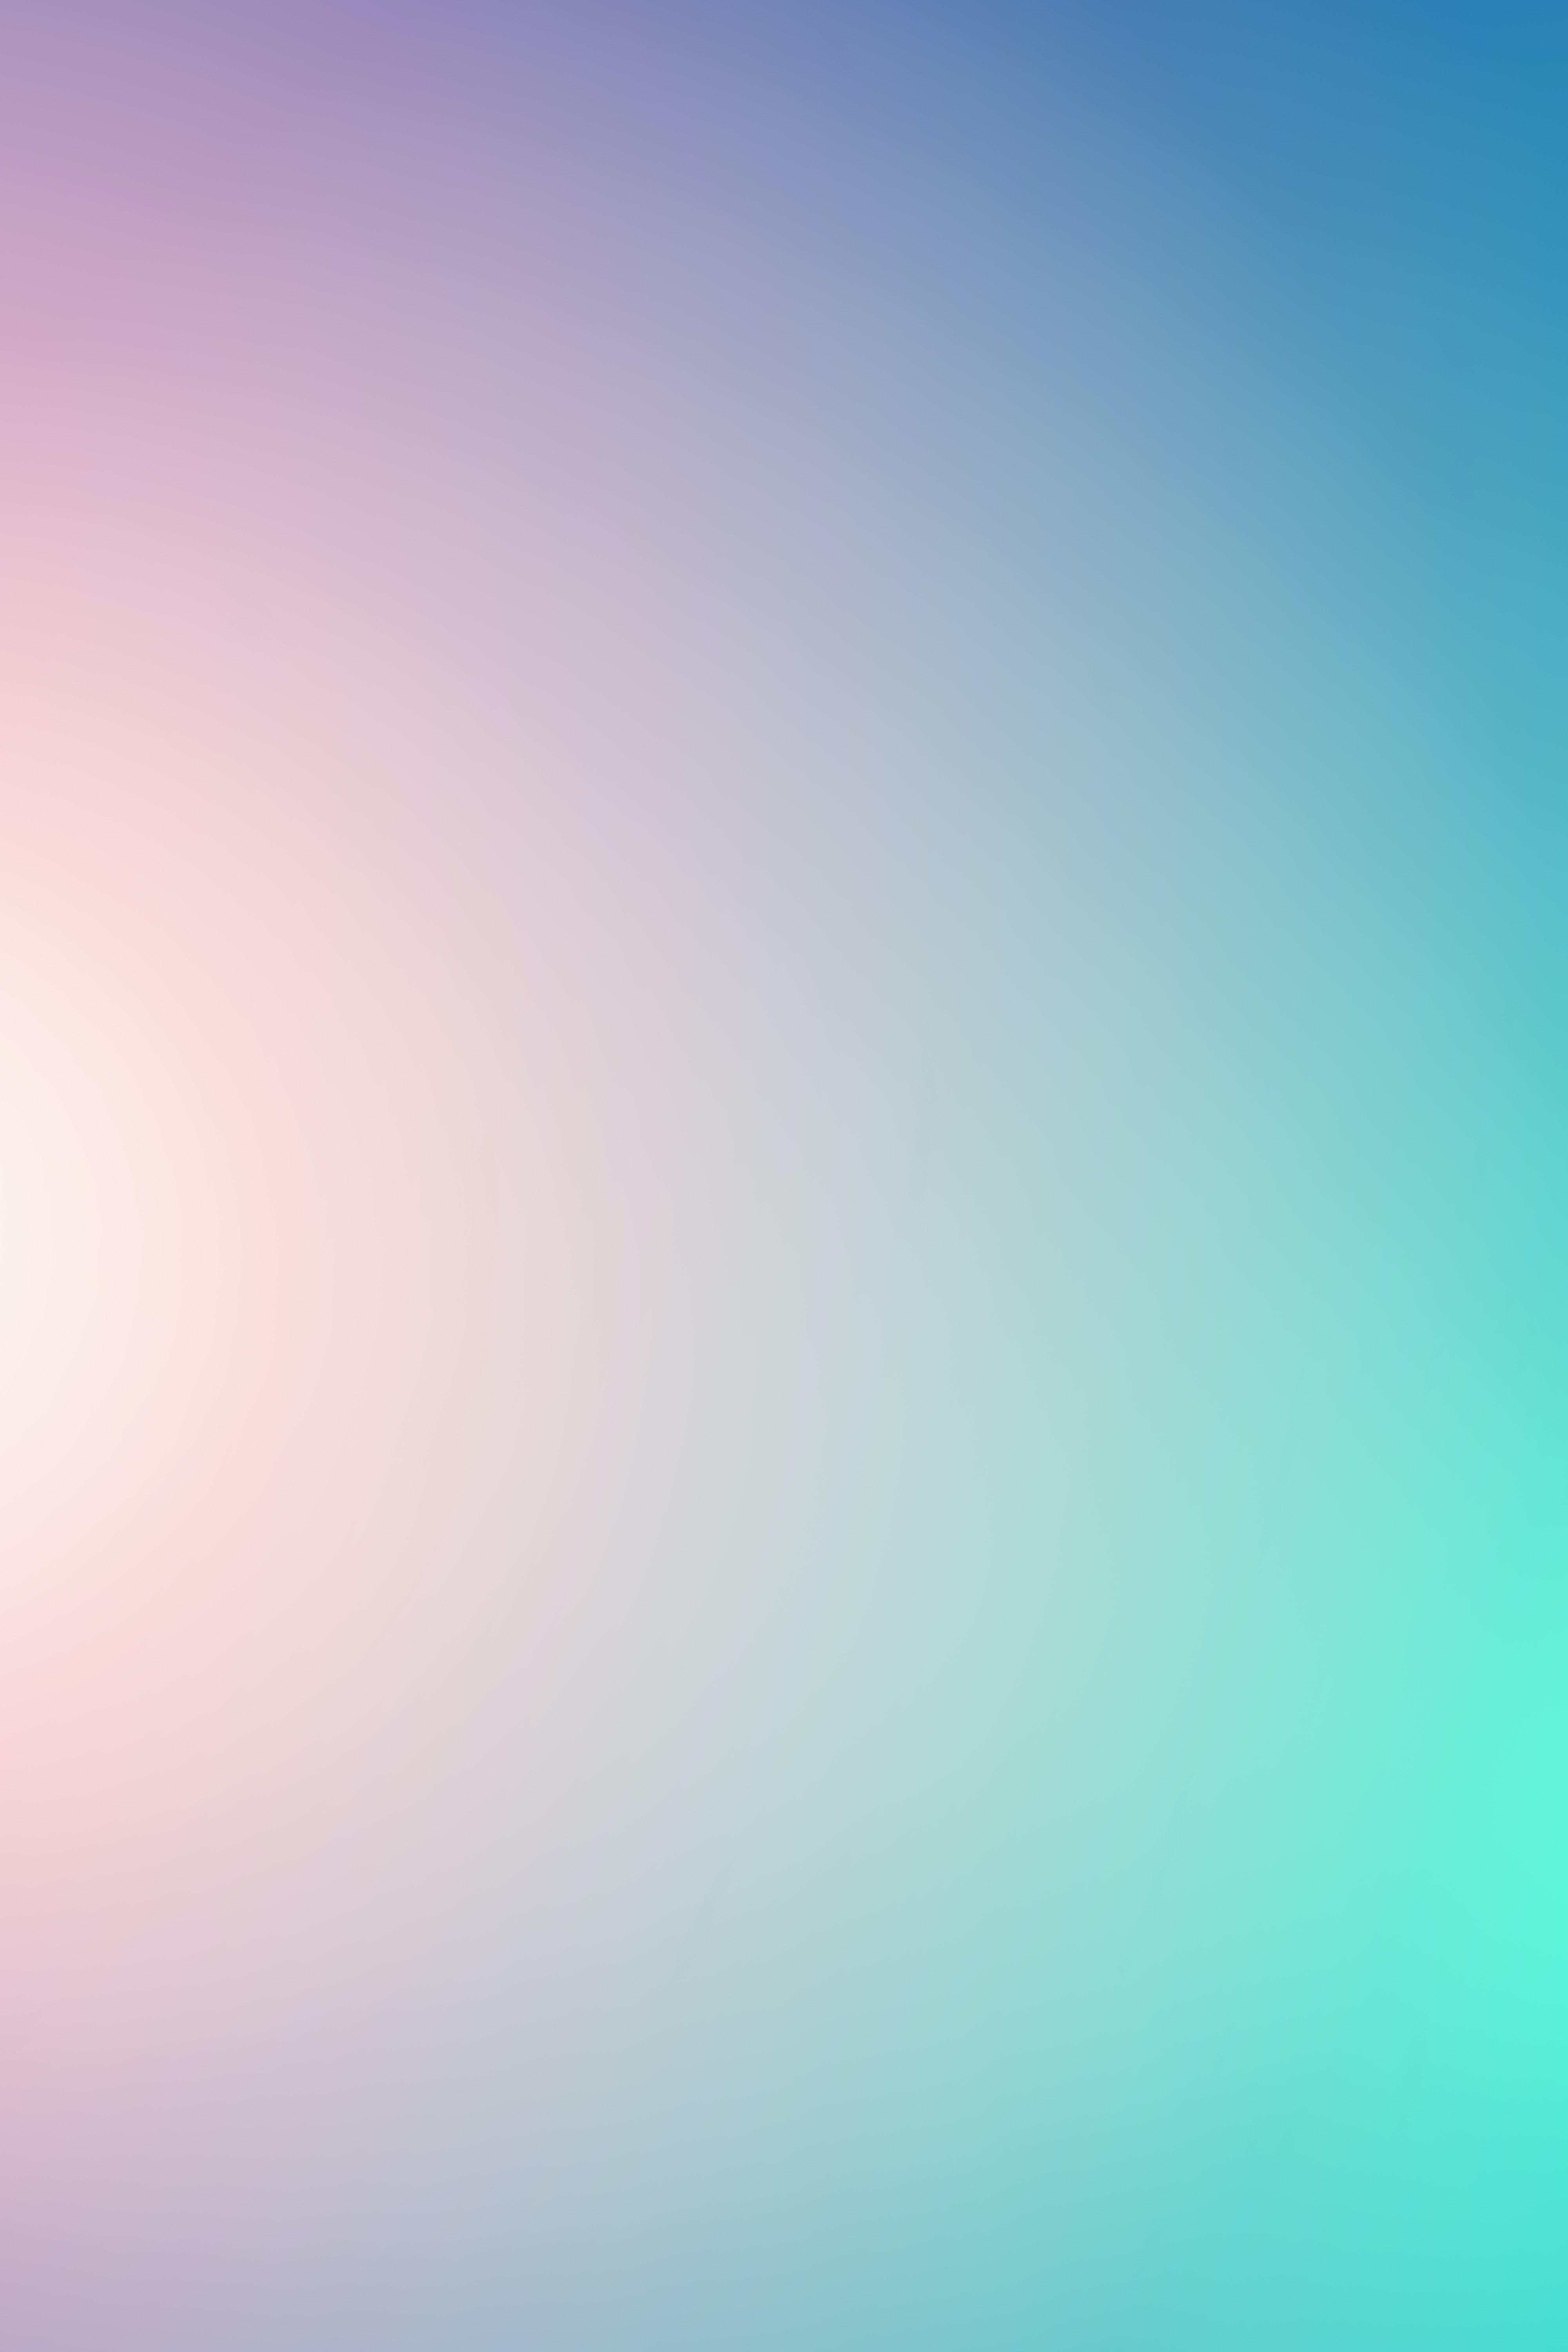 Download free Gradient HD pictures